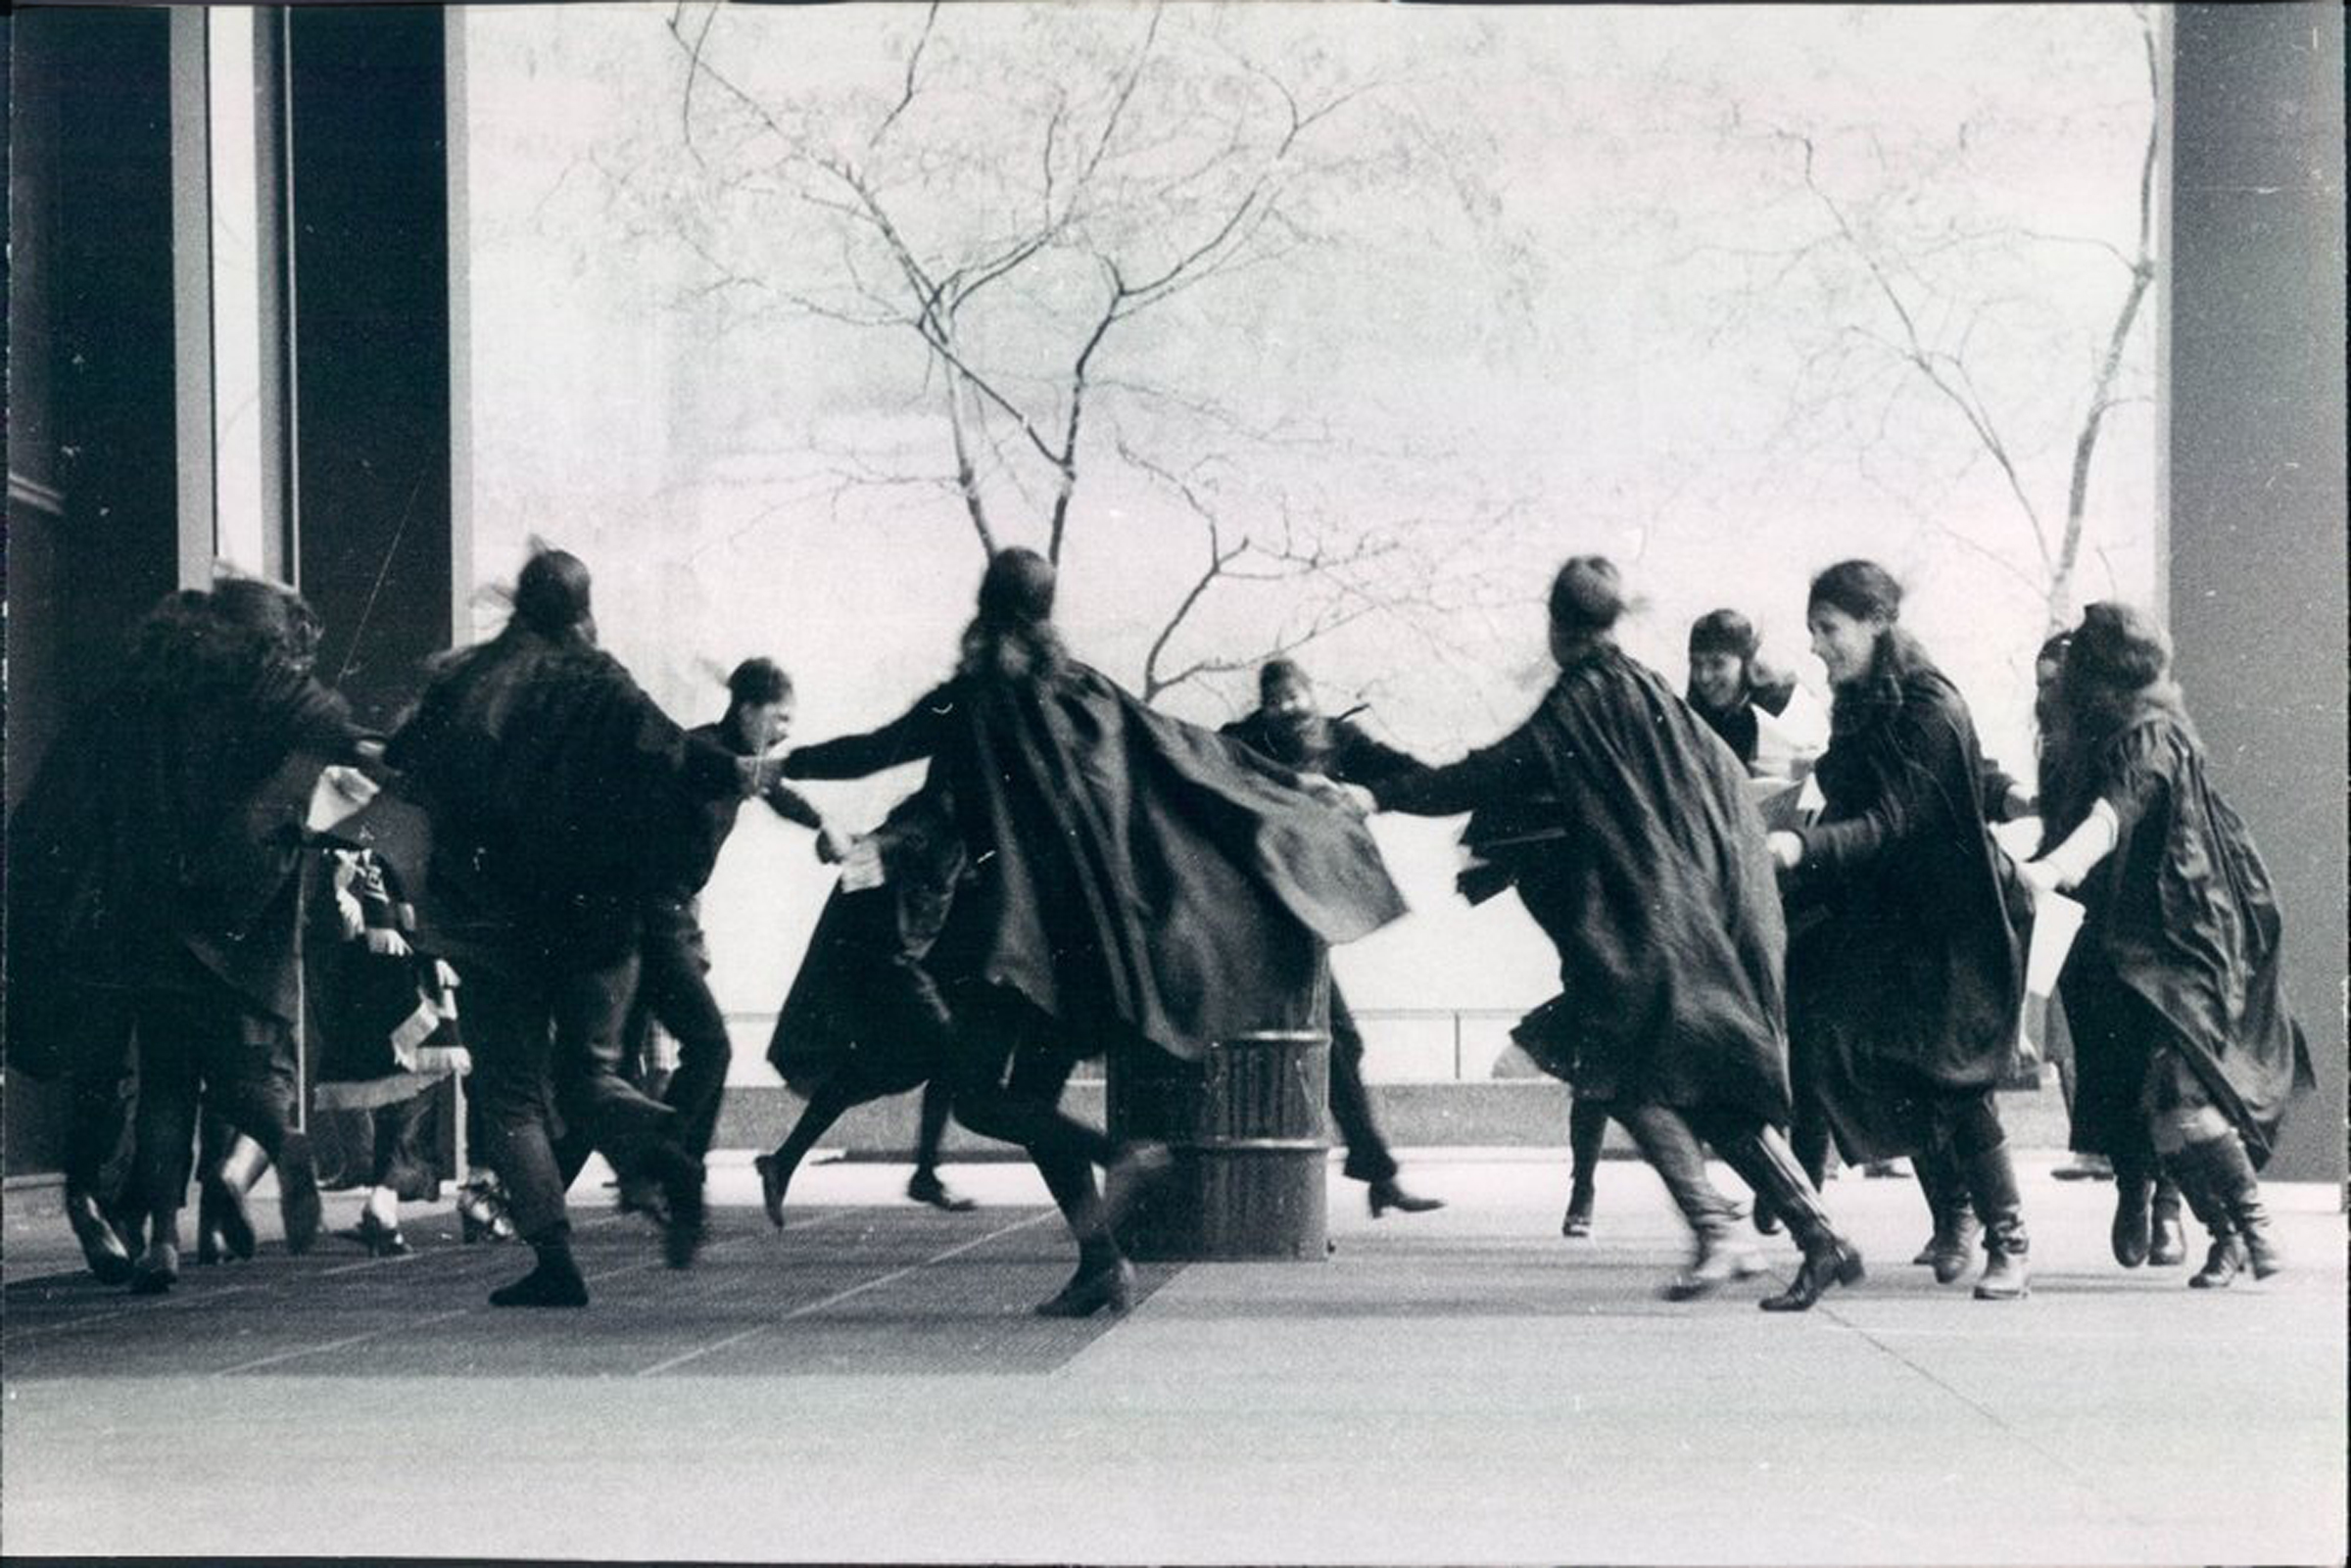 a group of witches dance together in a black and white photo